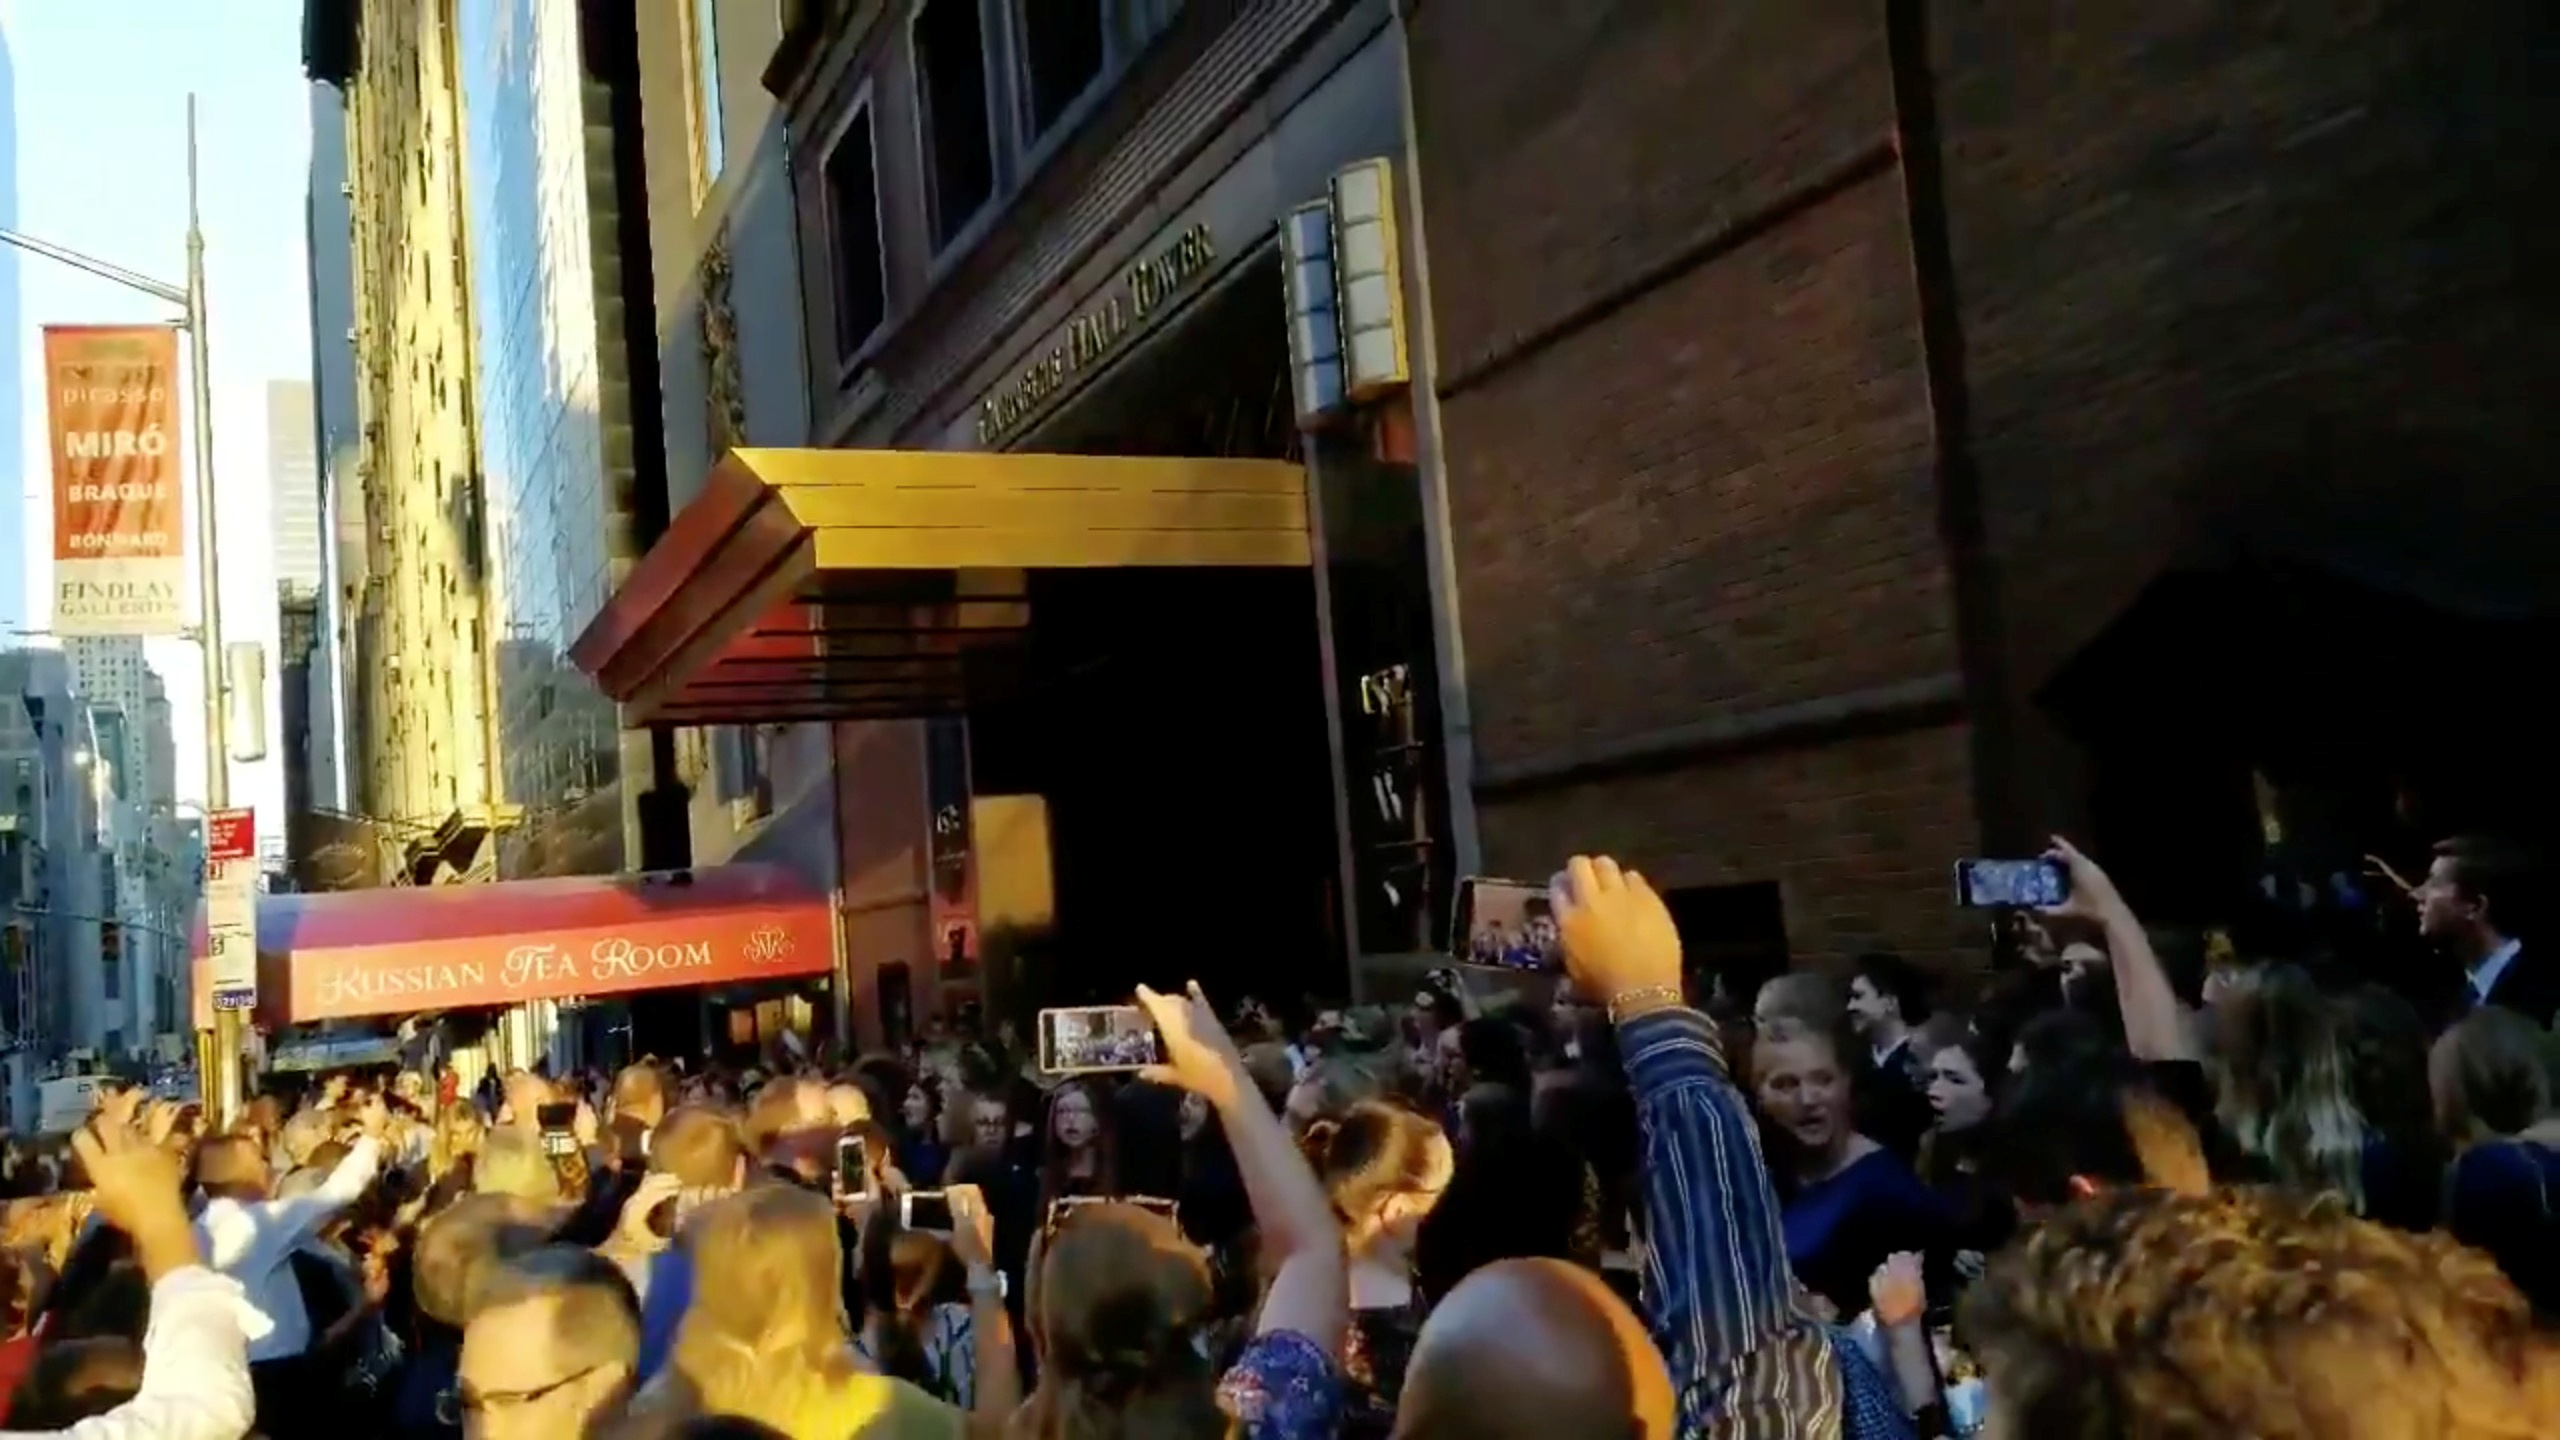 People evacuated from a Carnegie Hall concert during a blackout due to widespread power outages in the Manhattan borough of New York City, U.S, listen to the choir singing on the street in this still frame obtained via social media video July 13, 2019.  @MARLINPIE via REUTERS